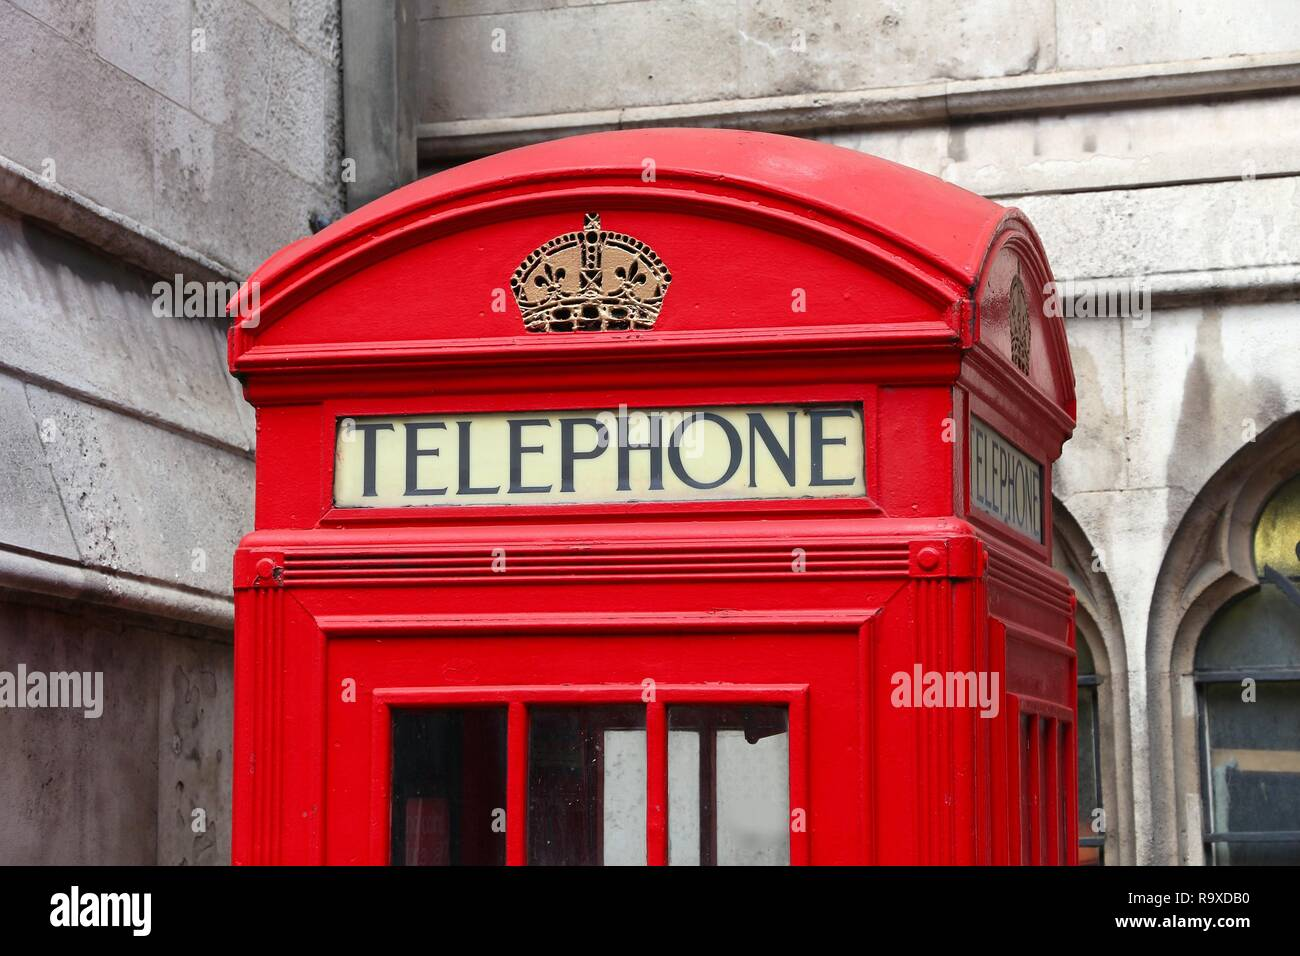 London phone boxes - red telephone kiosk in the UK. - Stock Image